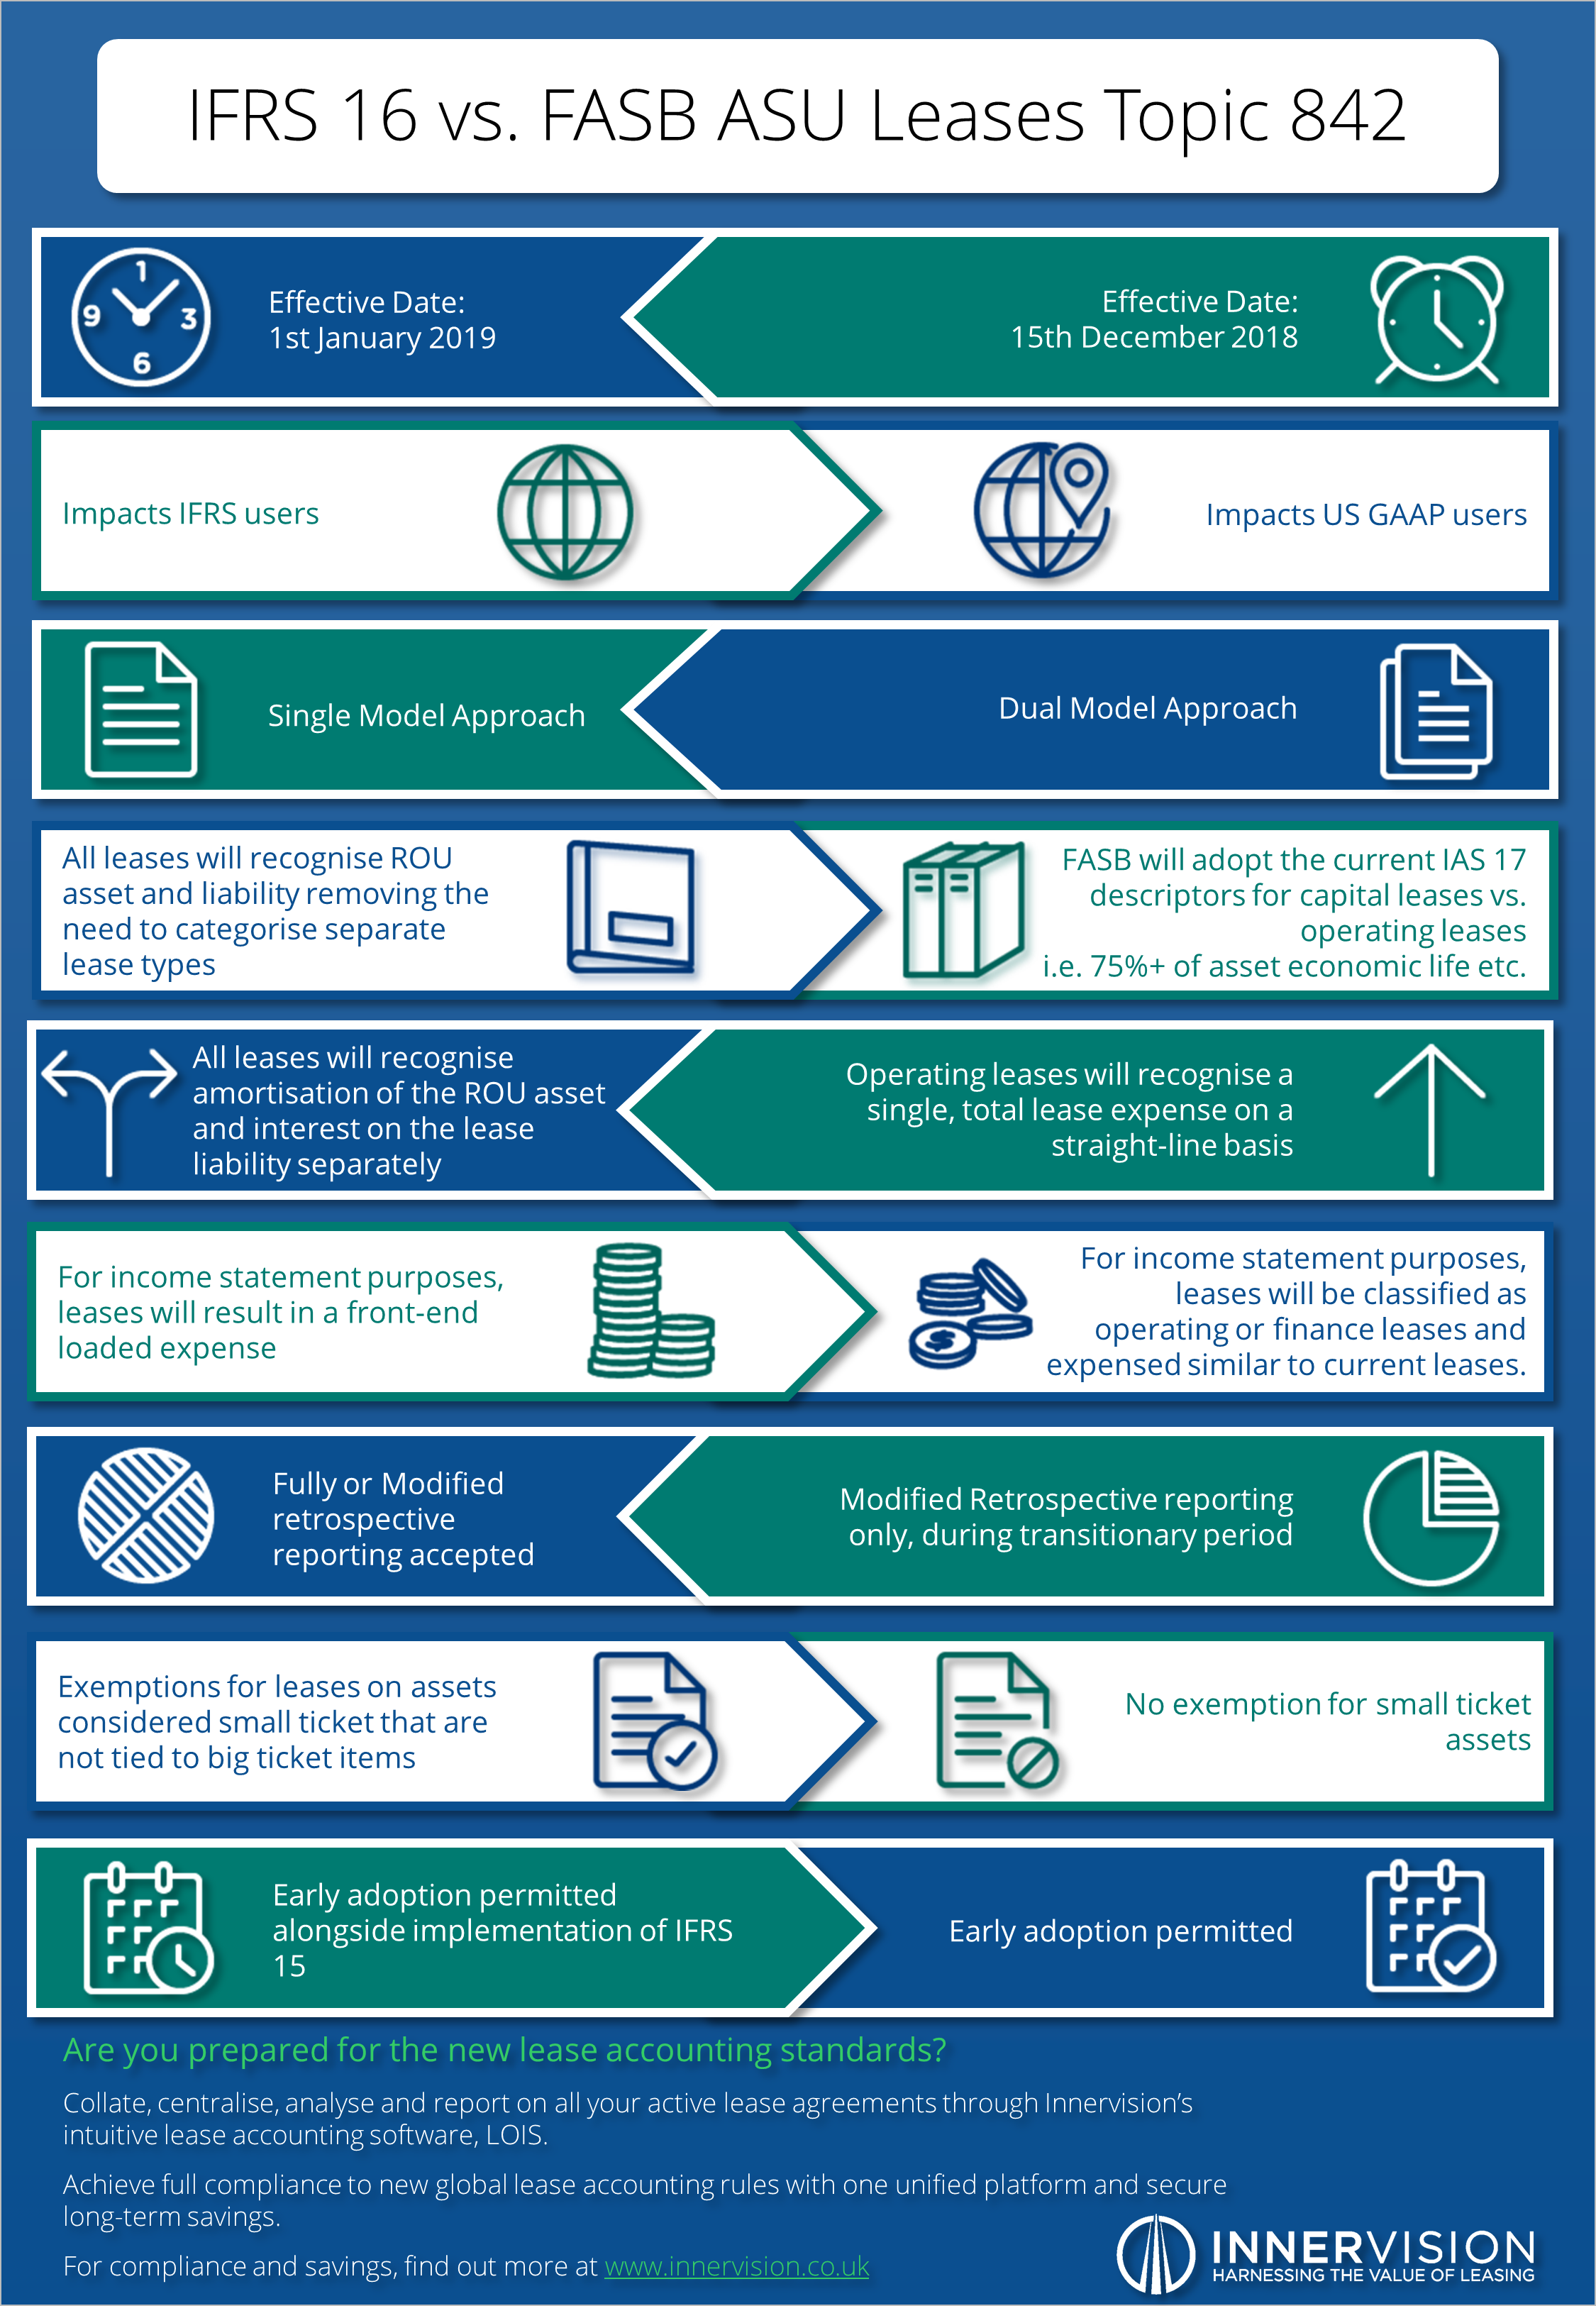 Innervision_IFRS_16_vs._FASB_ASU_Leases_Infographic.png